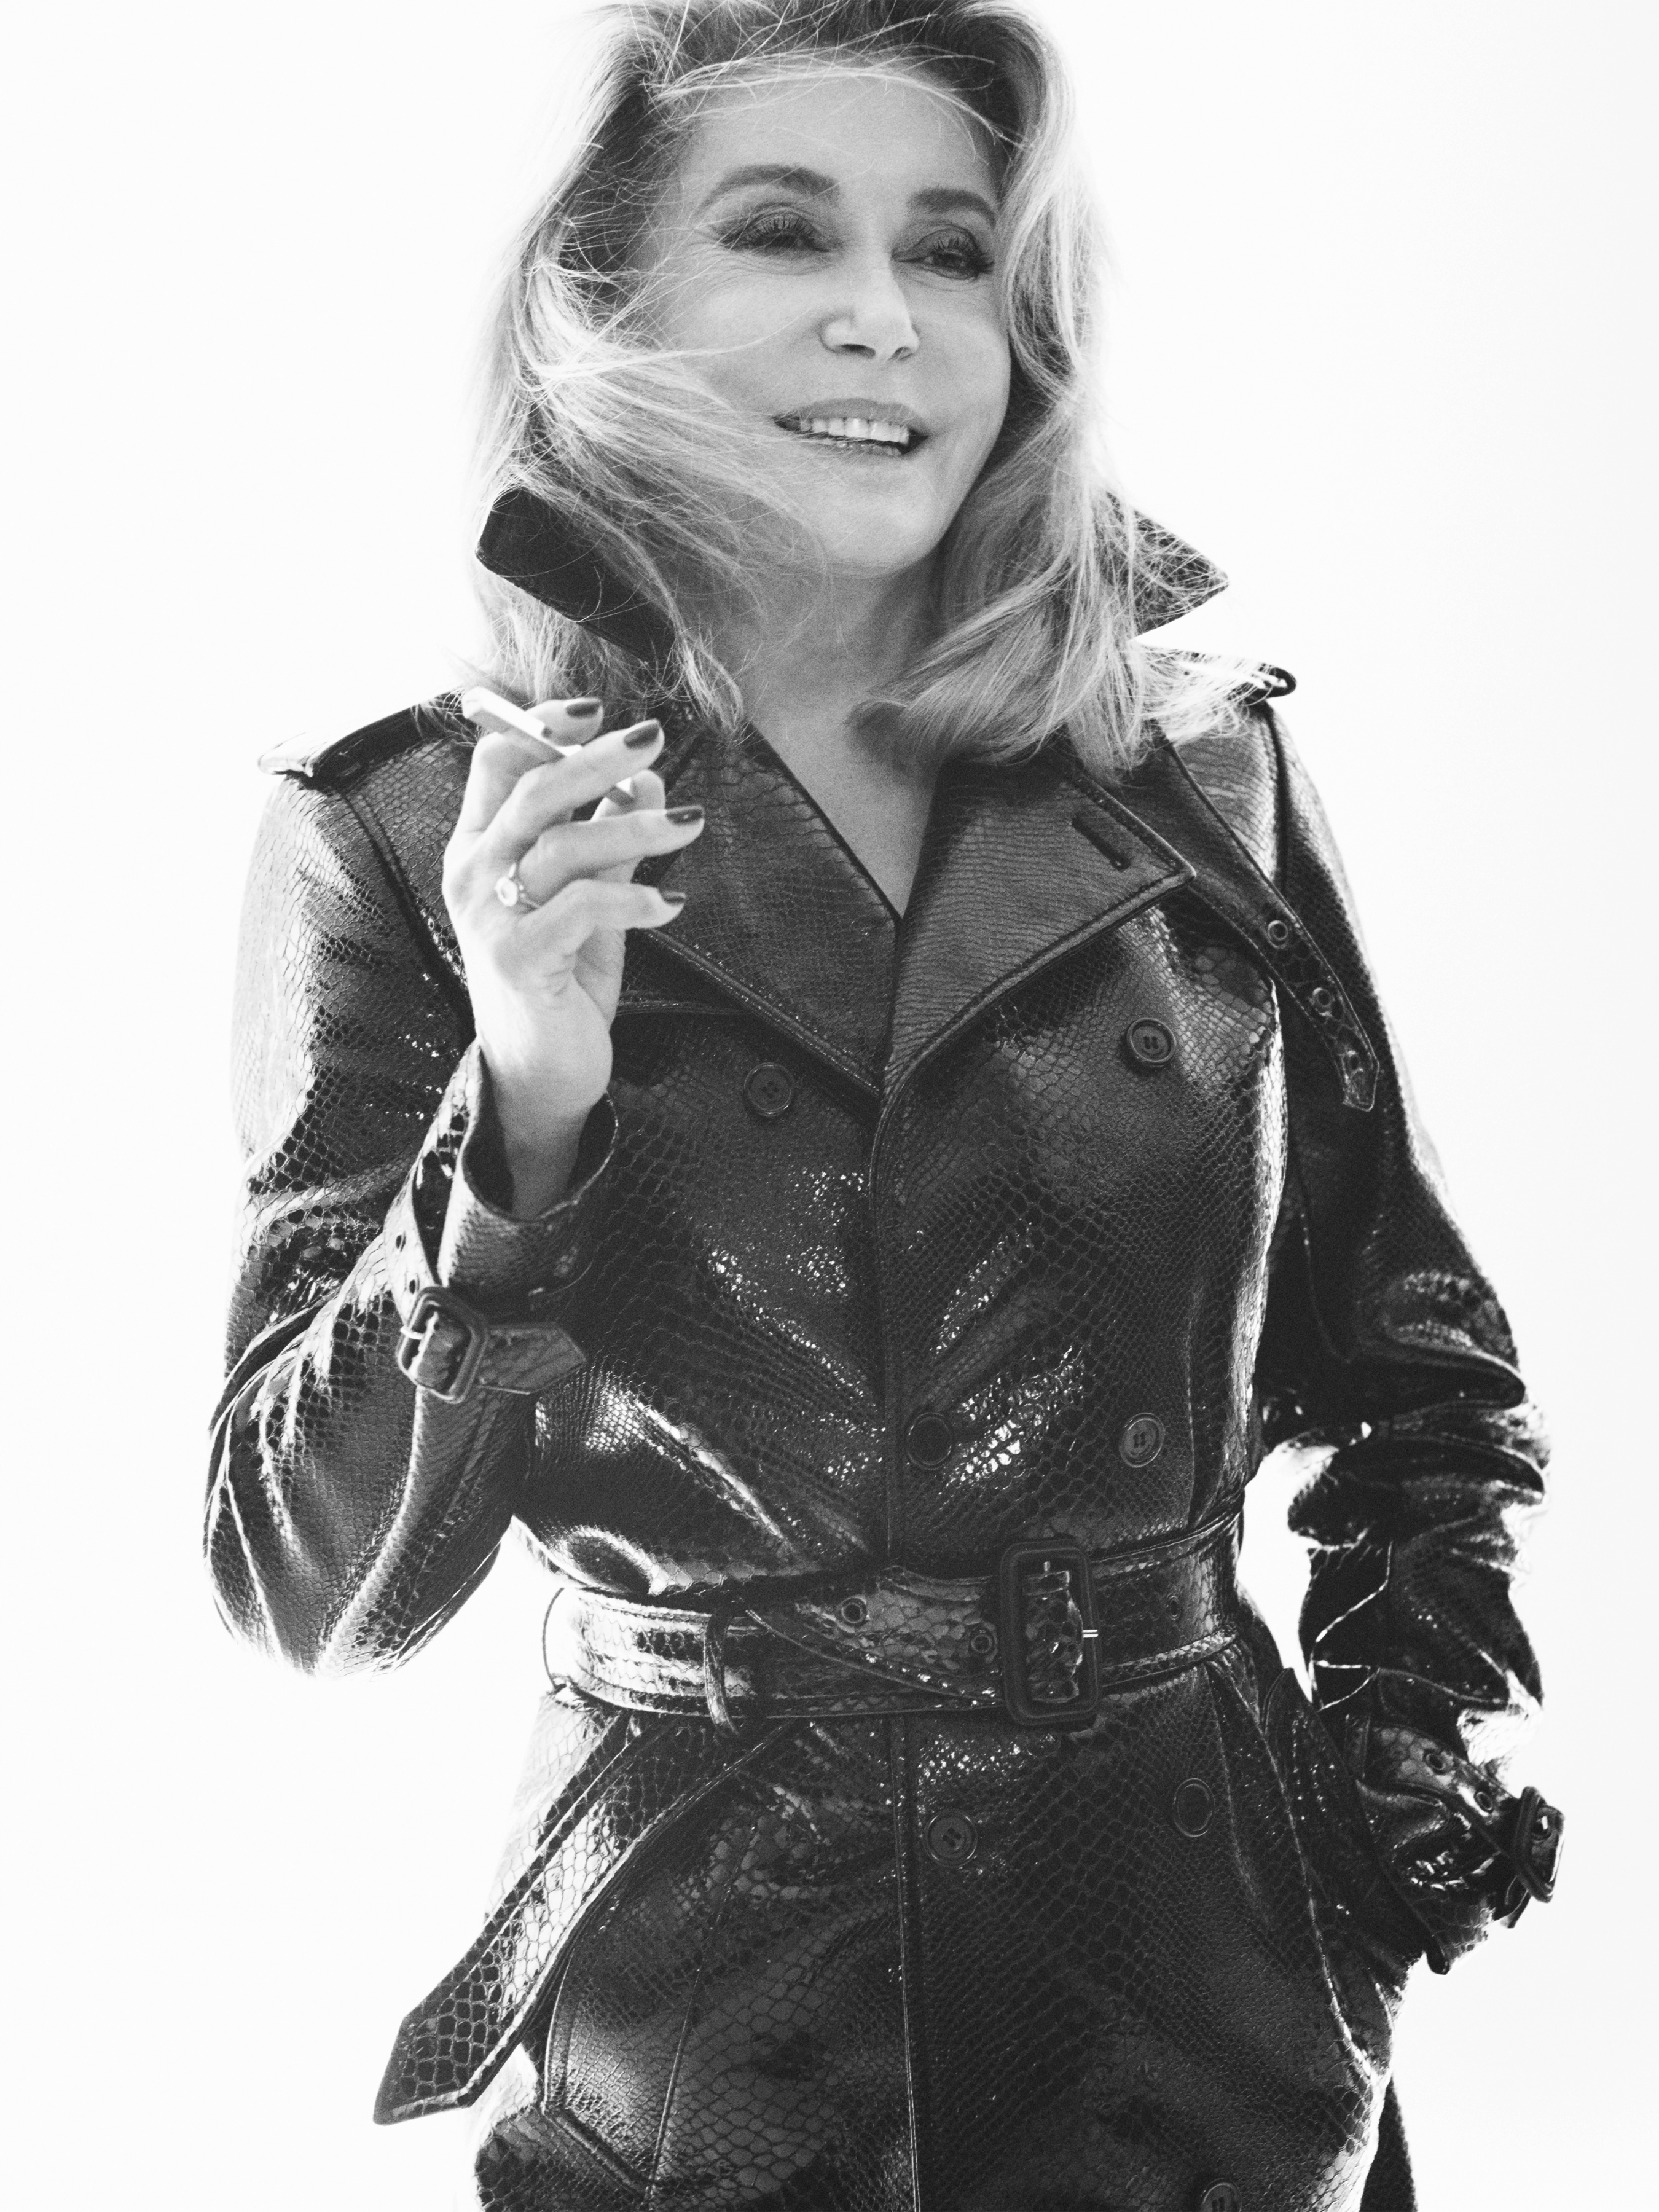 Catherine Deneuve in Saint Laurent's spring campaign.